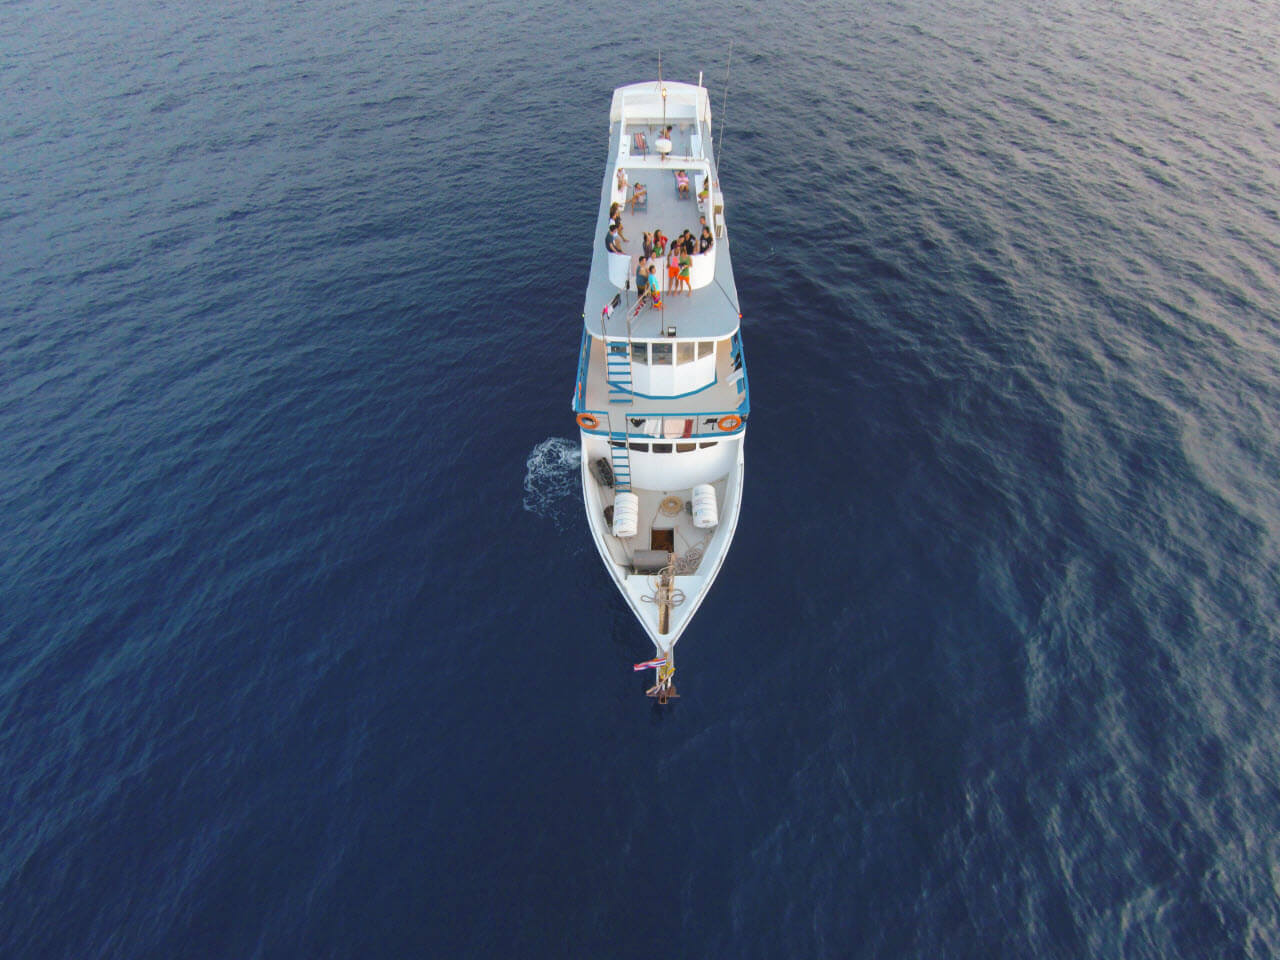 Group Cruising is Emerging Trend